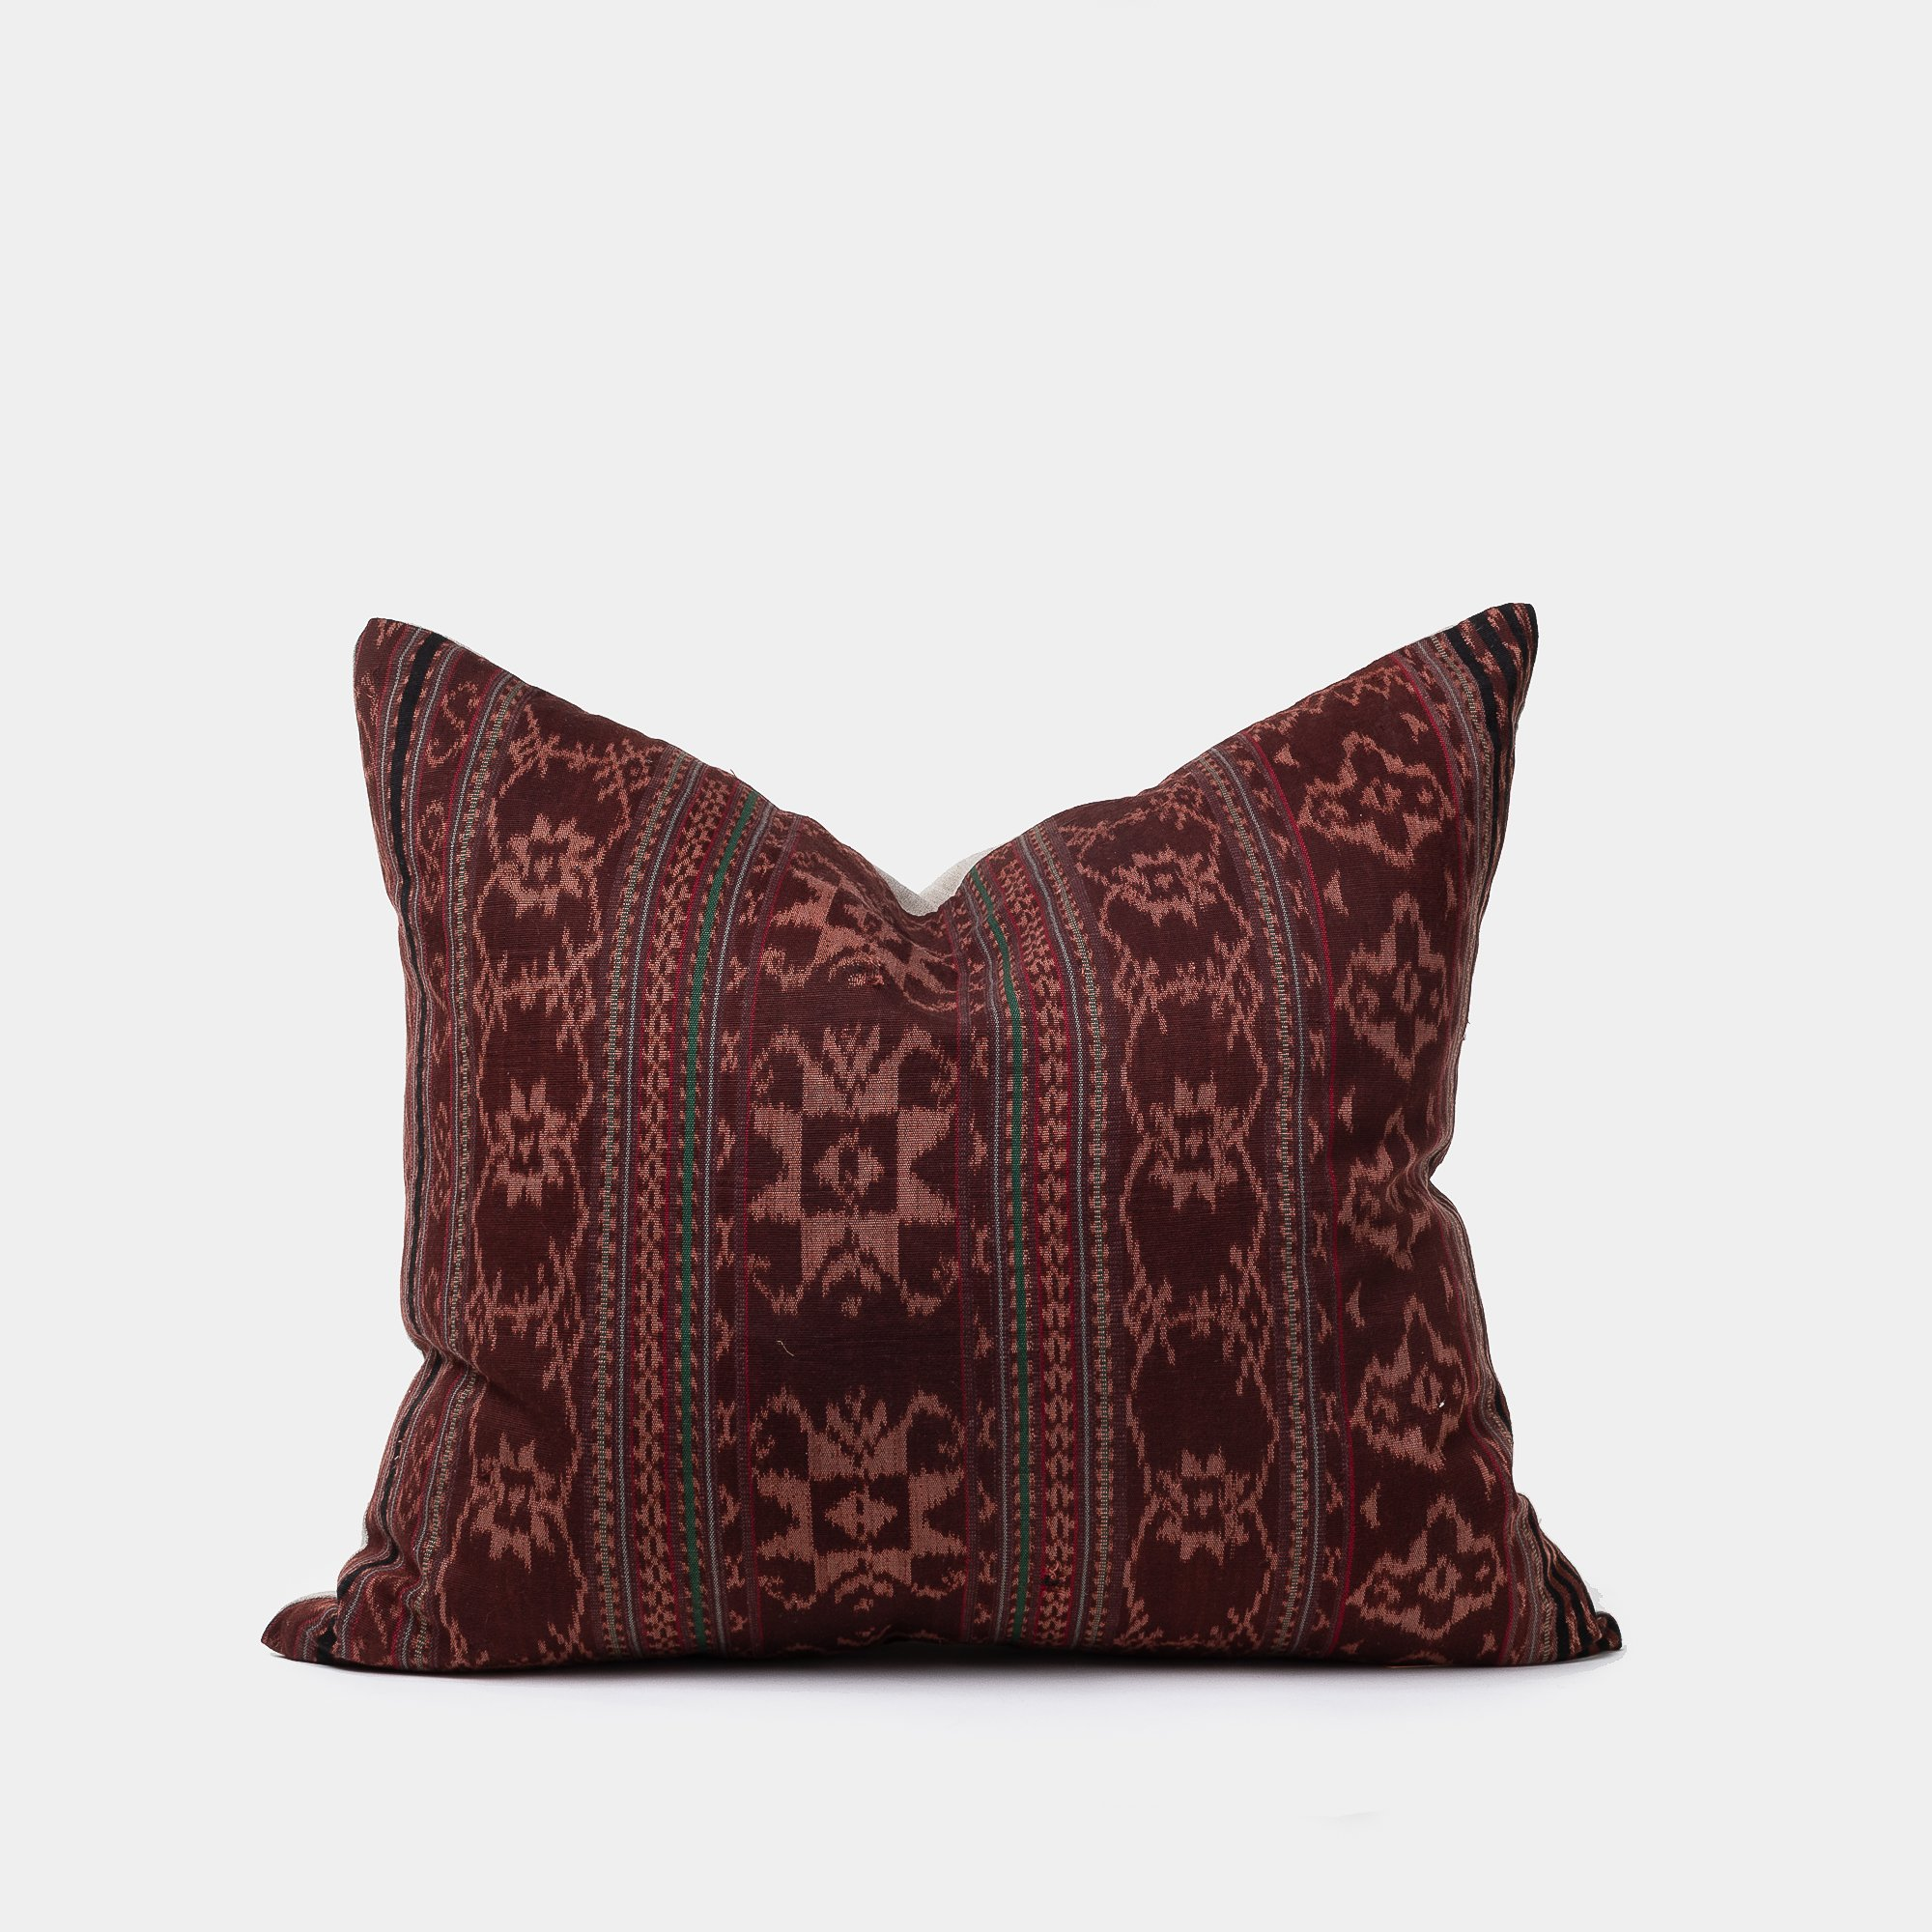 ALL-SORTS-OF-SHOPPE-PILLOW-ALEXANDRA